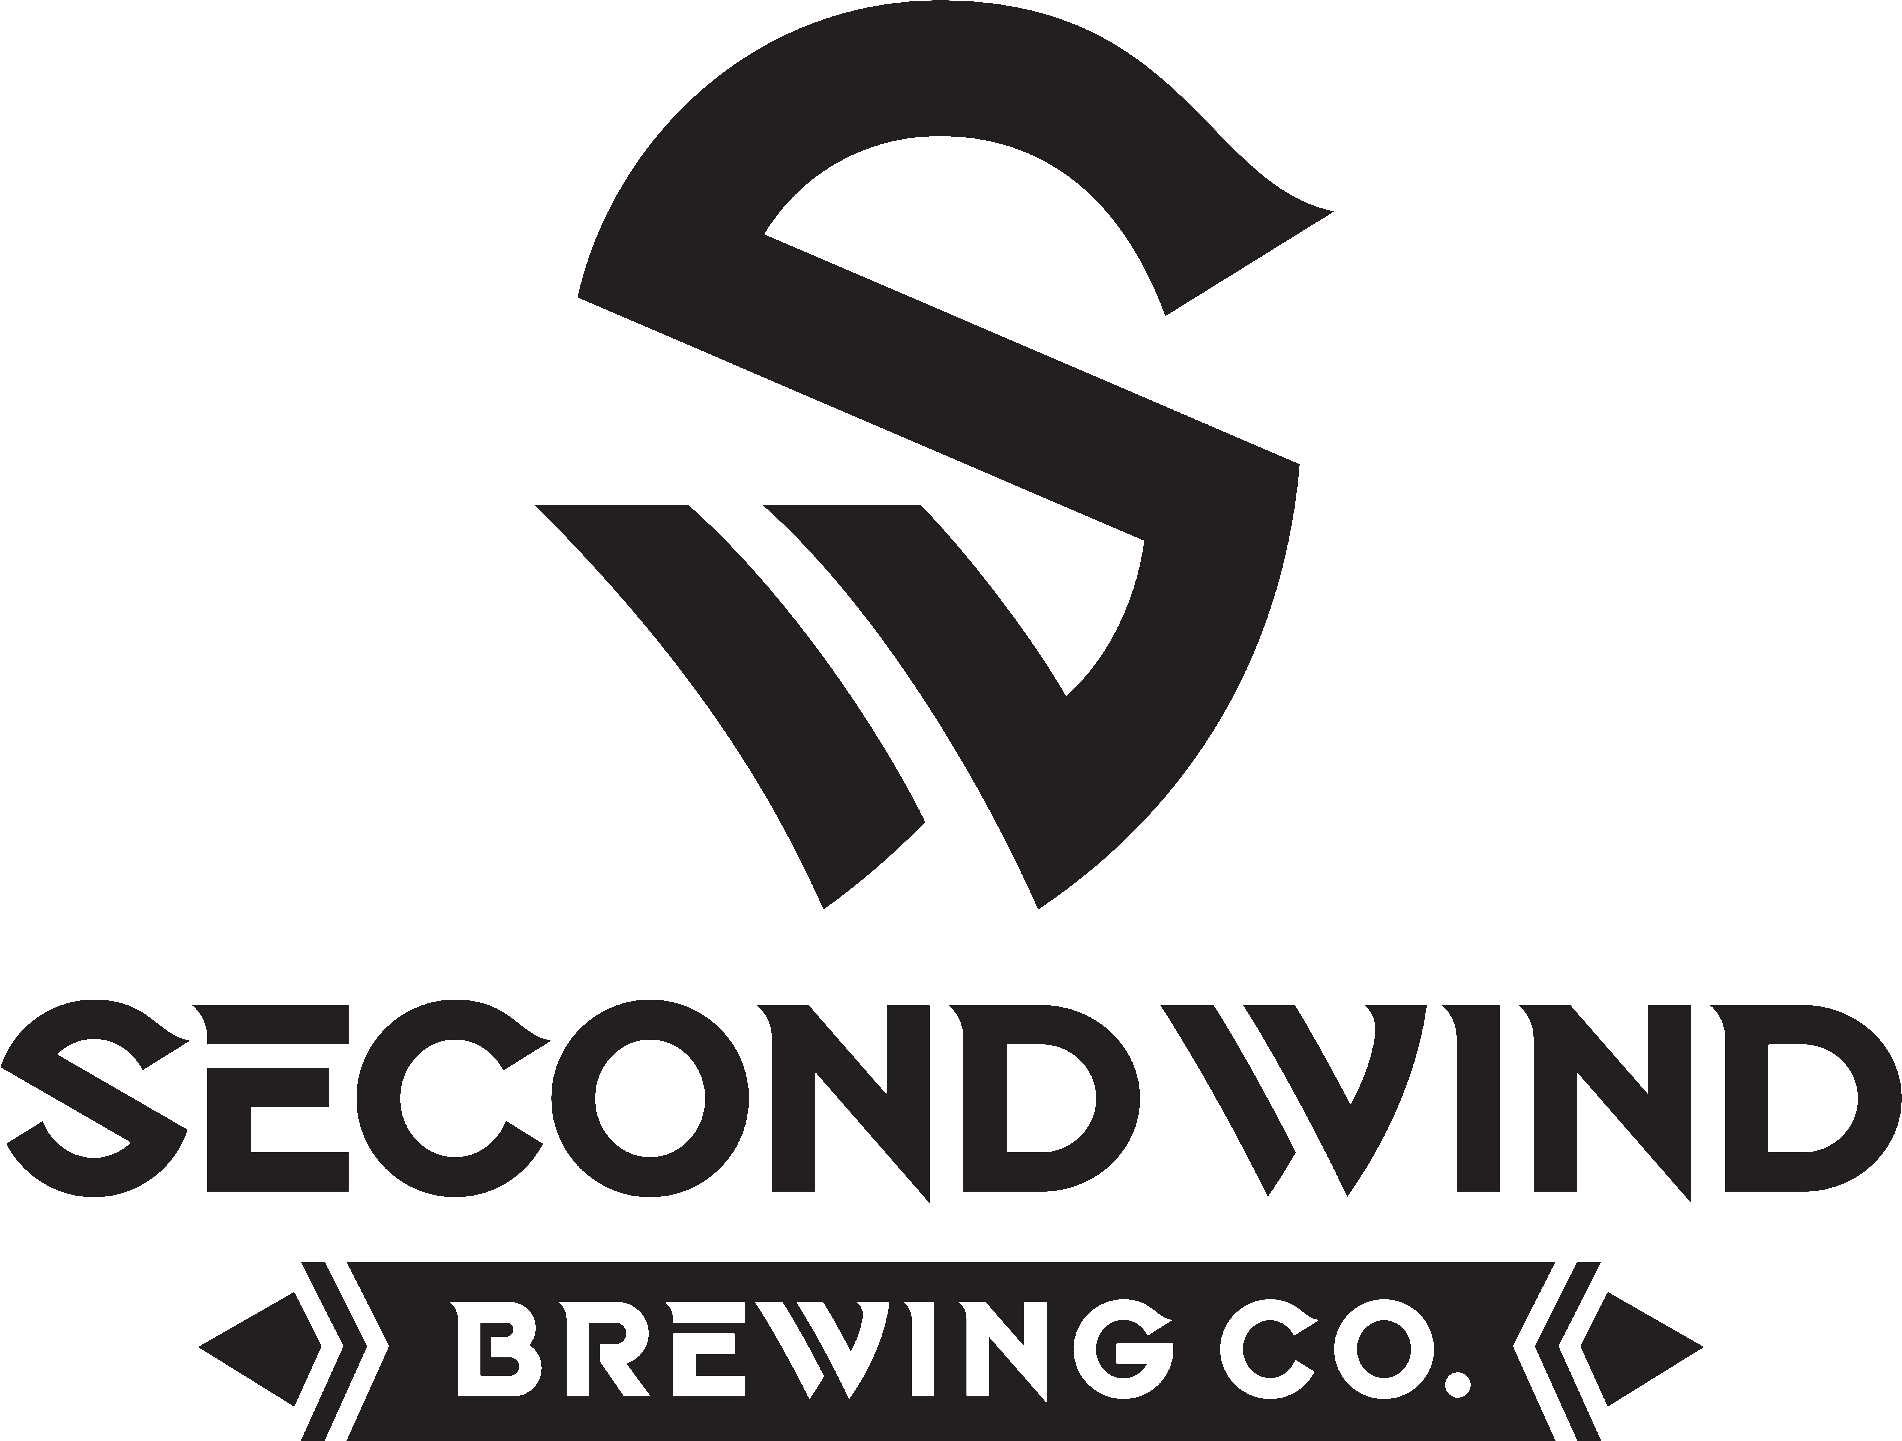 Second Wind Brewing